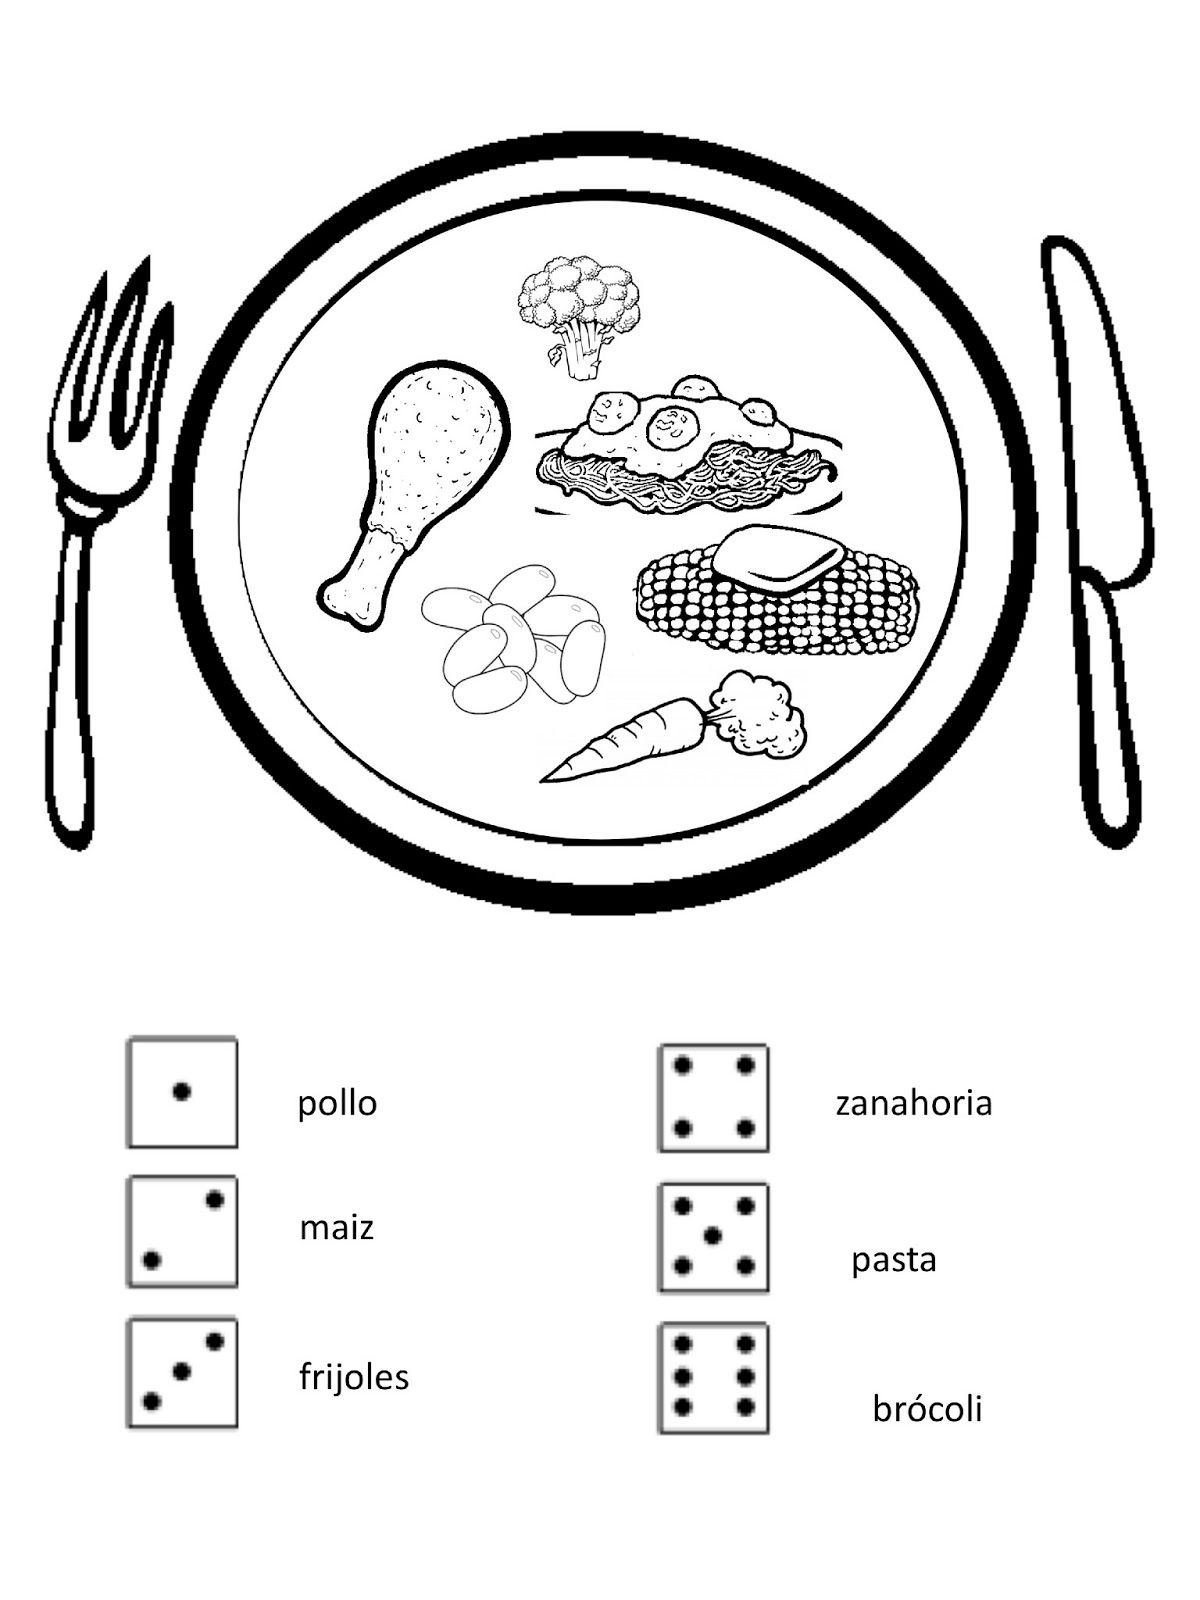 Teaching Meals in Spanish ¡Mmmm delicioso!